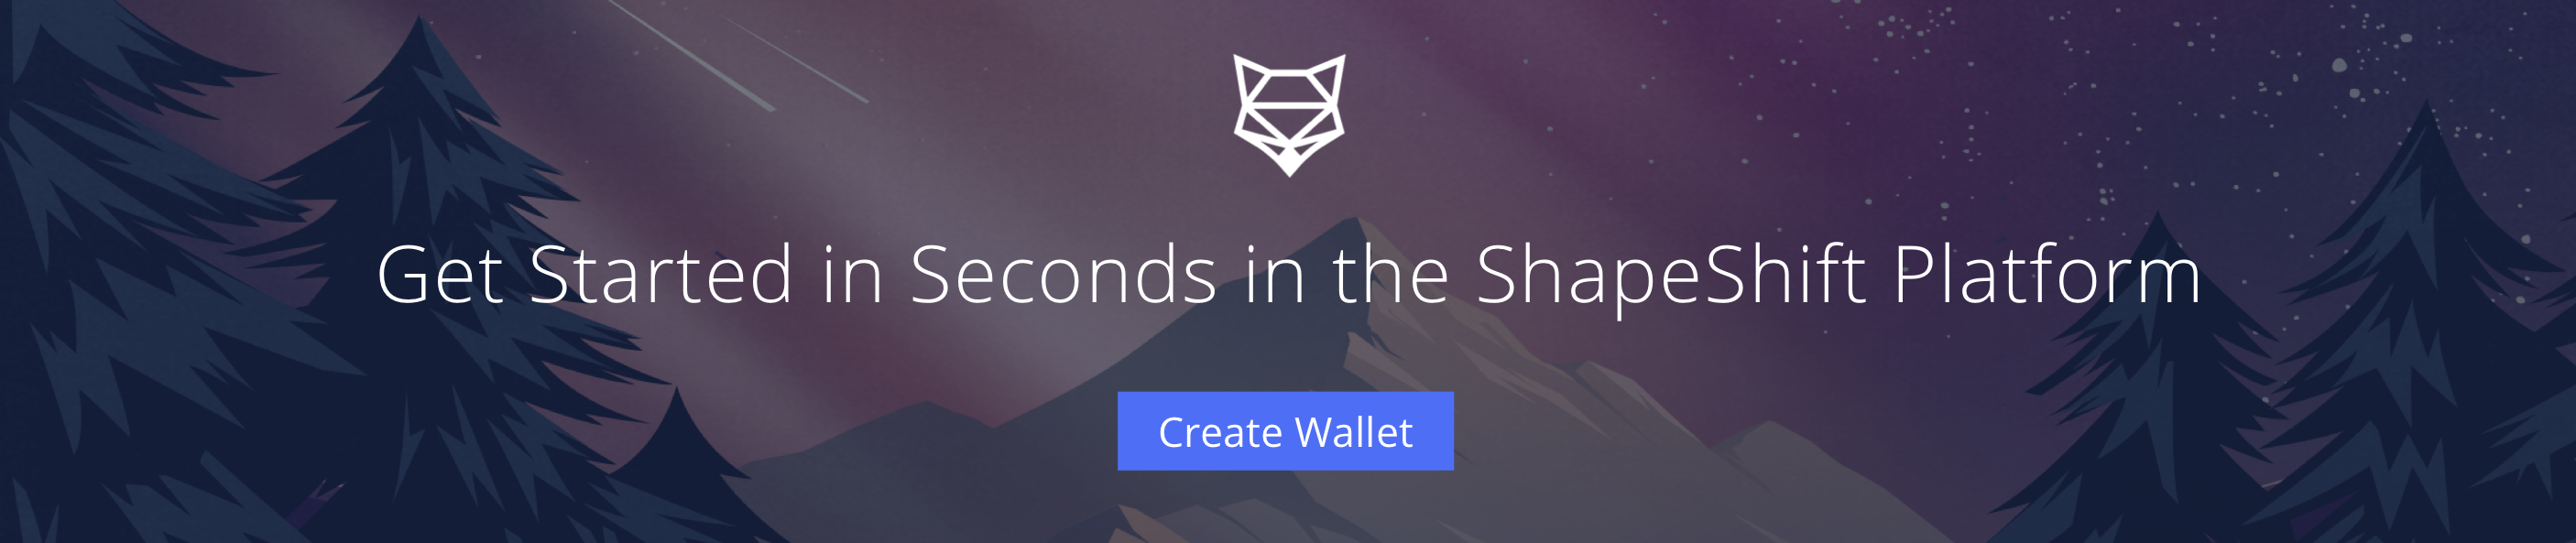 Get started in seconds with a new wallet in the ShapeShift Platform.